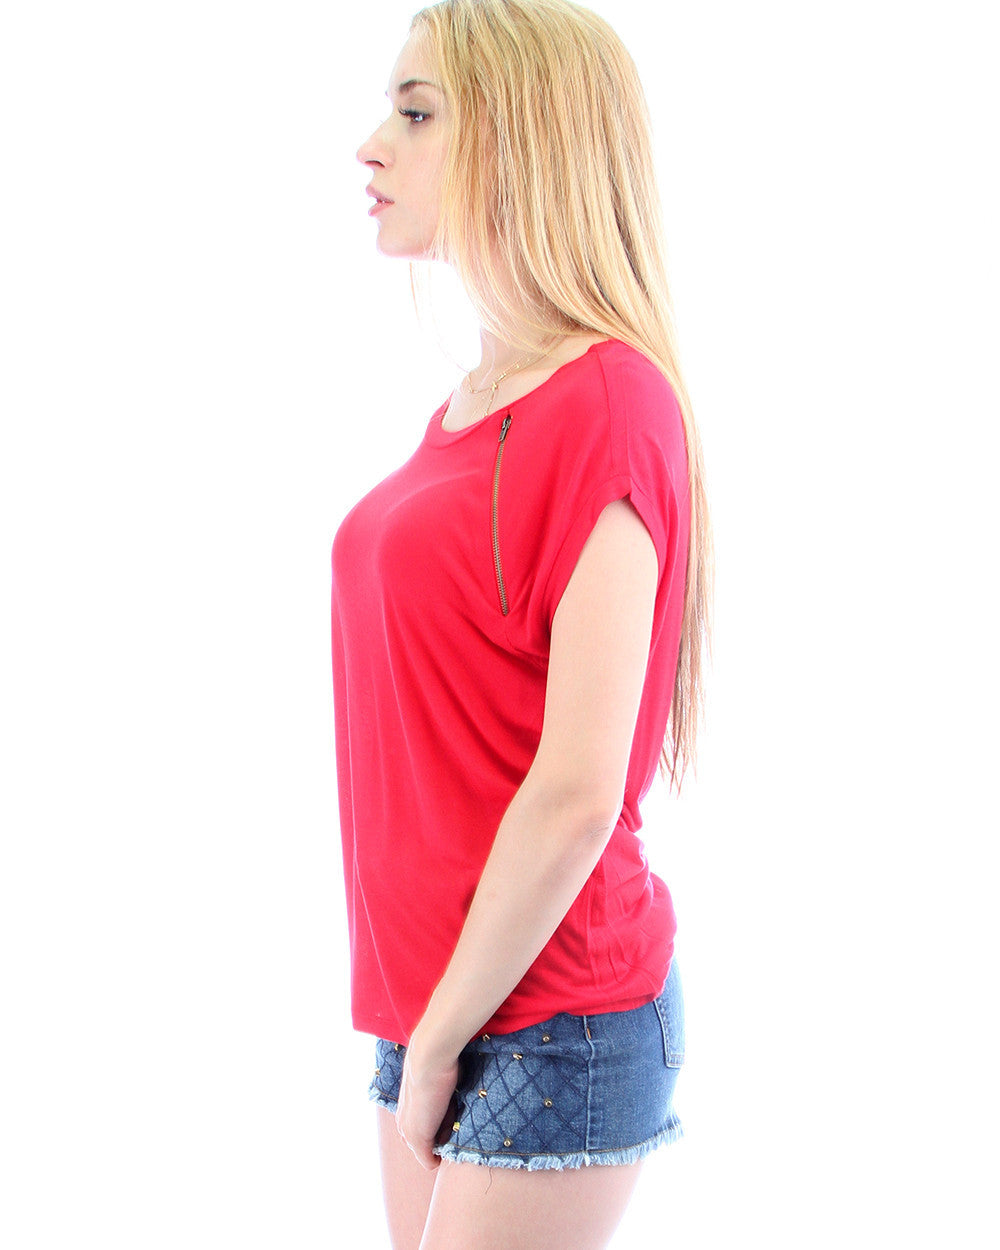 Loose Fitting Tee with Zipper in Red